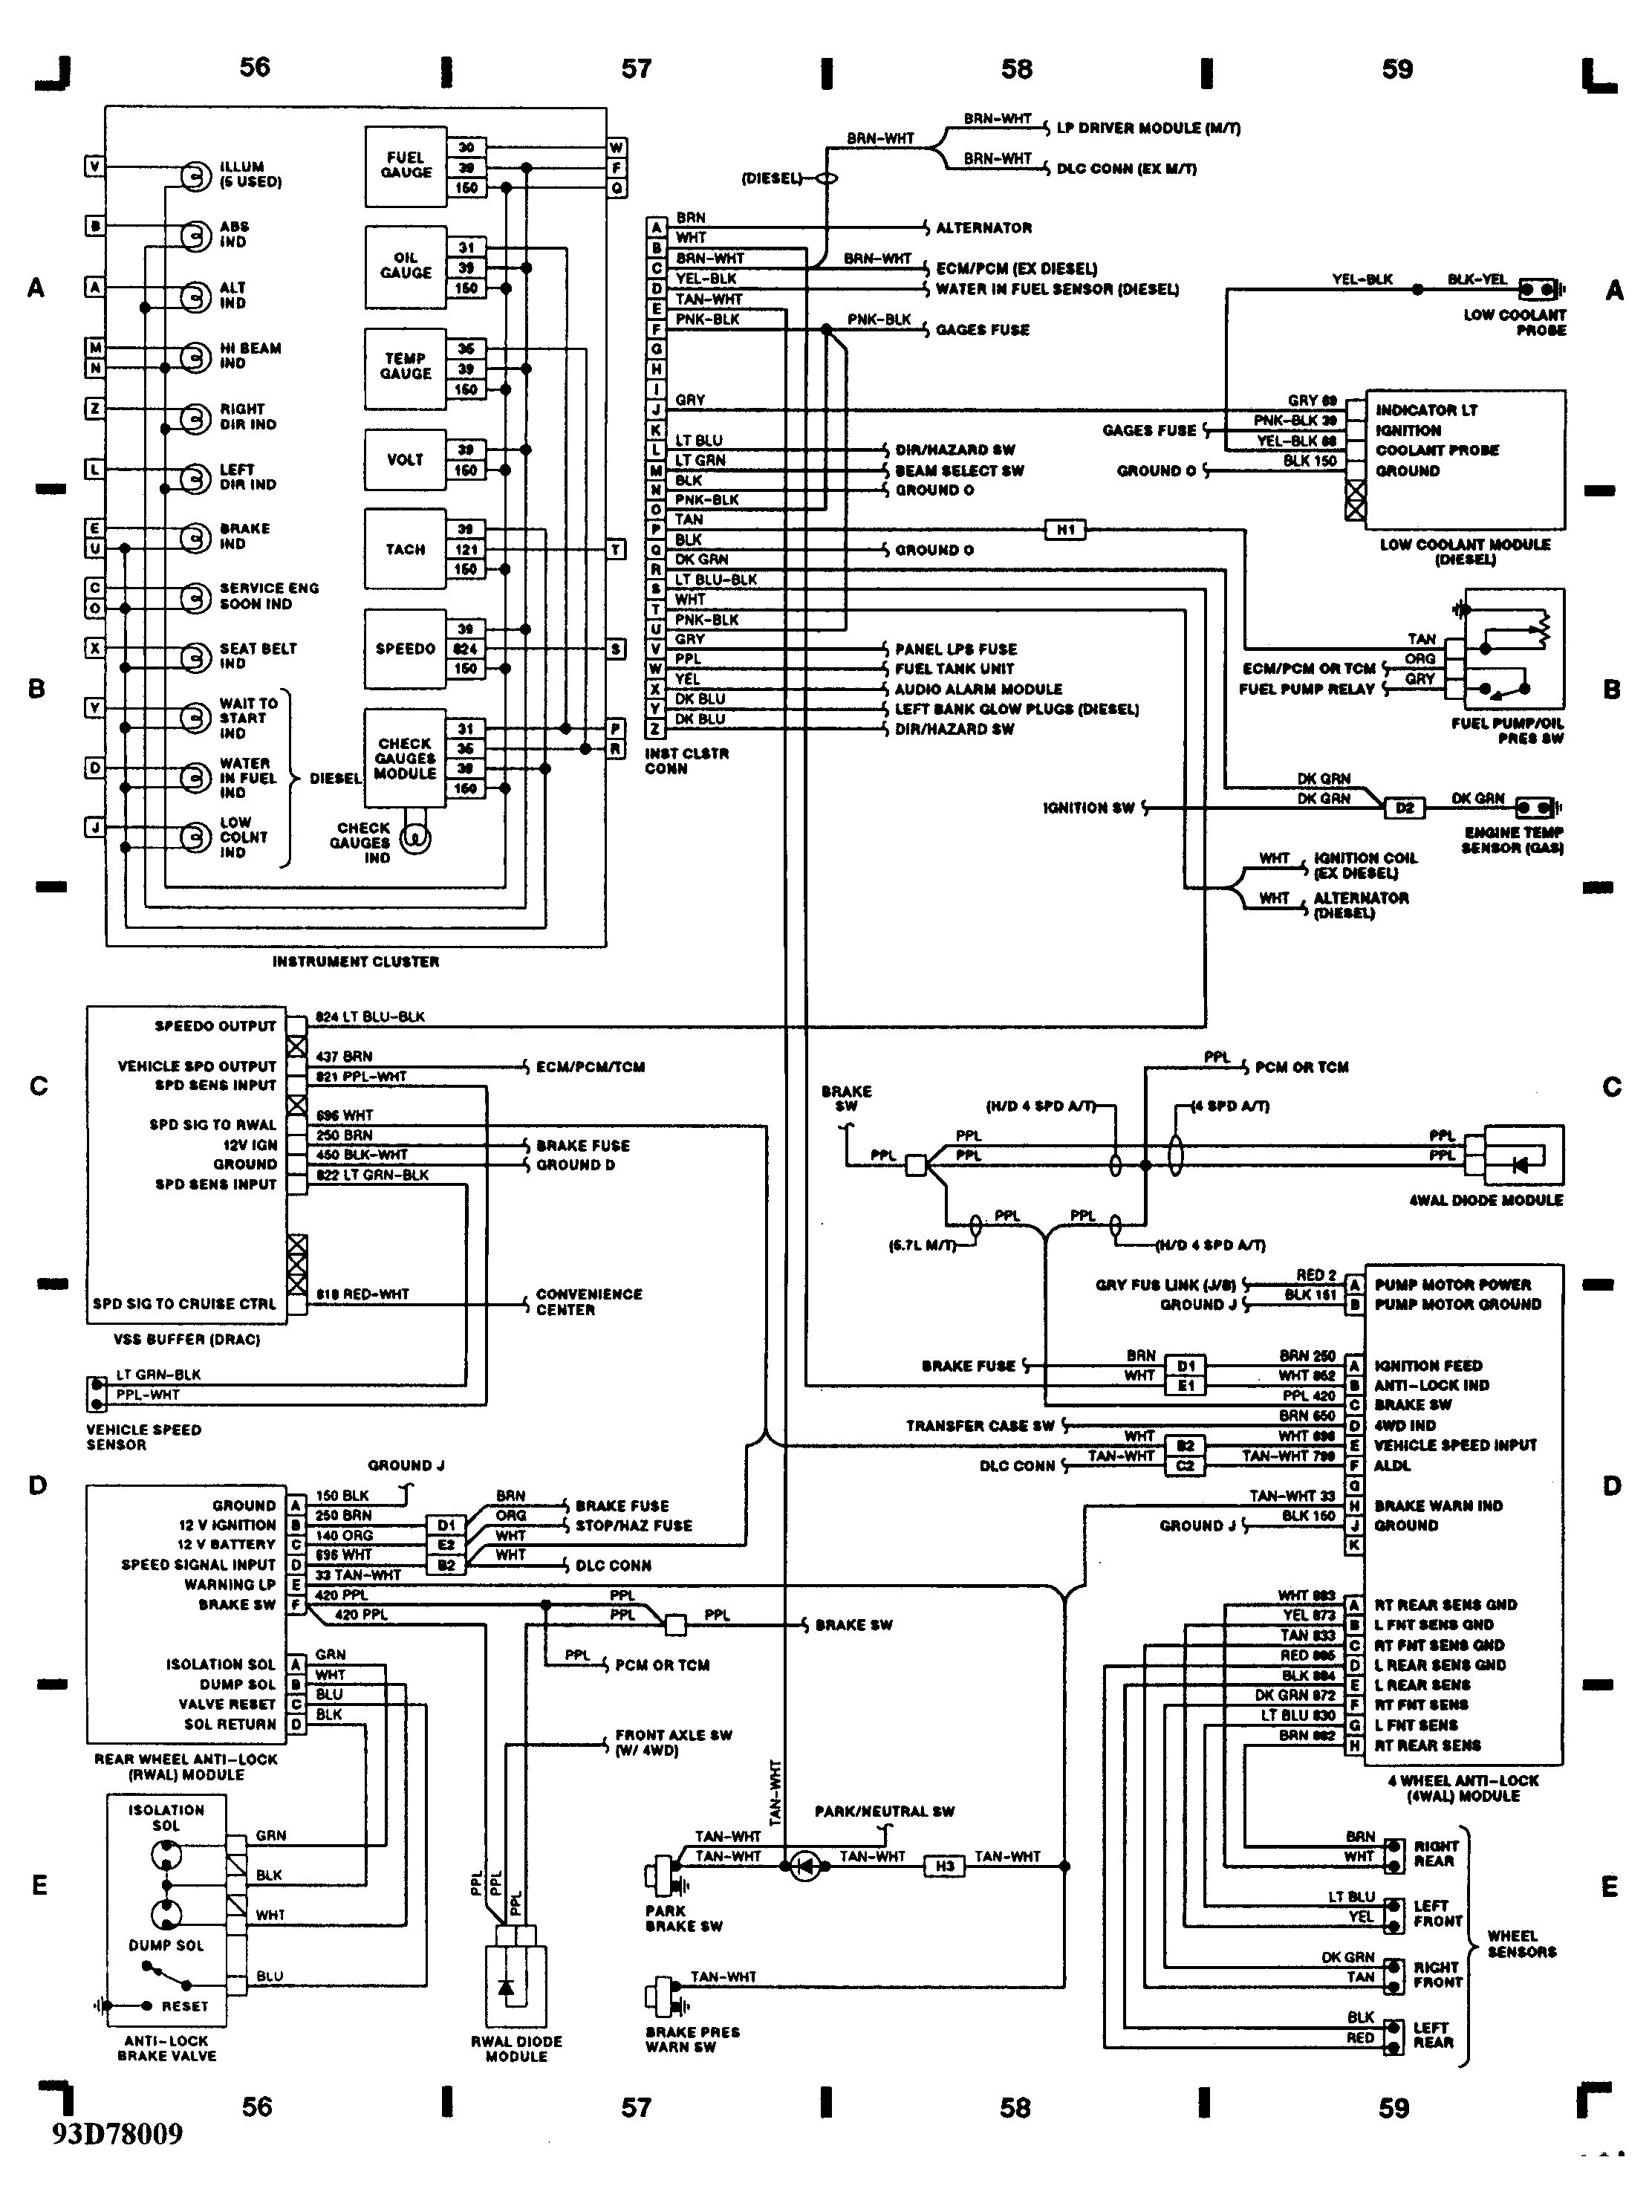 2008 chevy 1500 tail light wiring diagram schematics wiring diagrams u2022  rh ssl forum com 2004